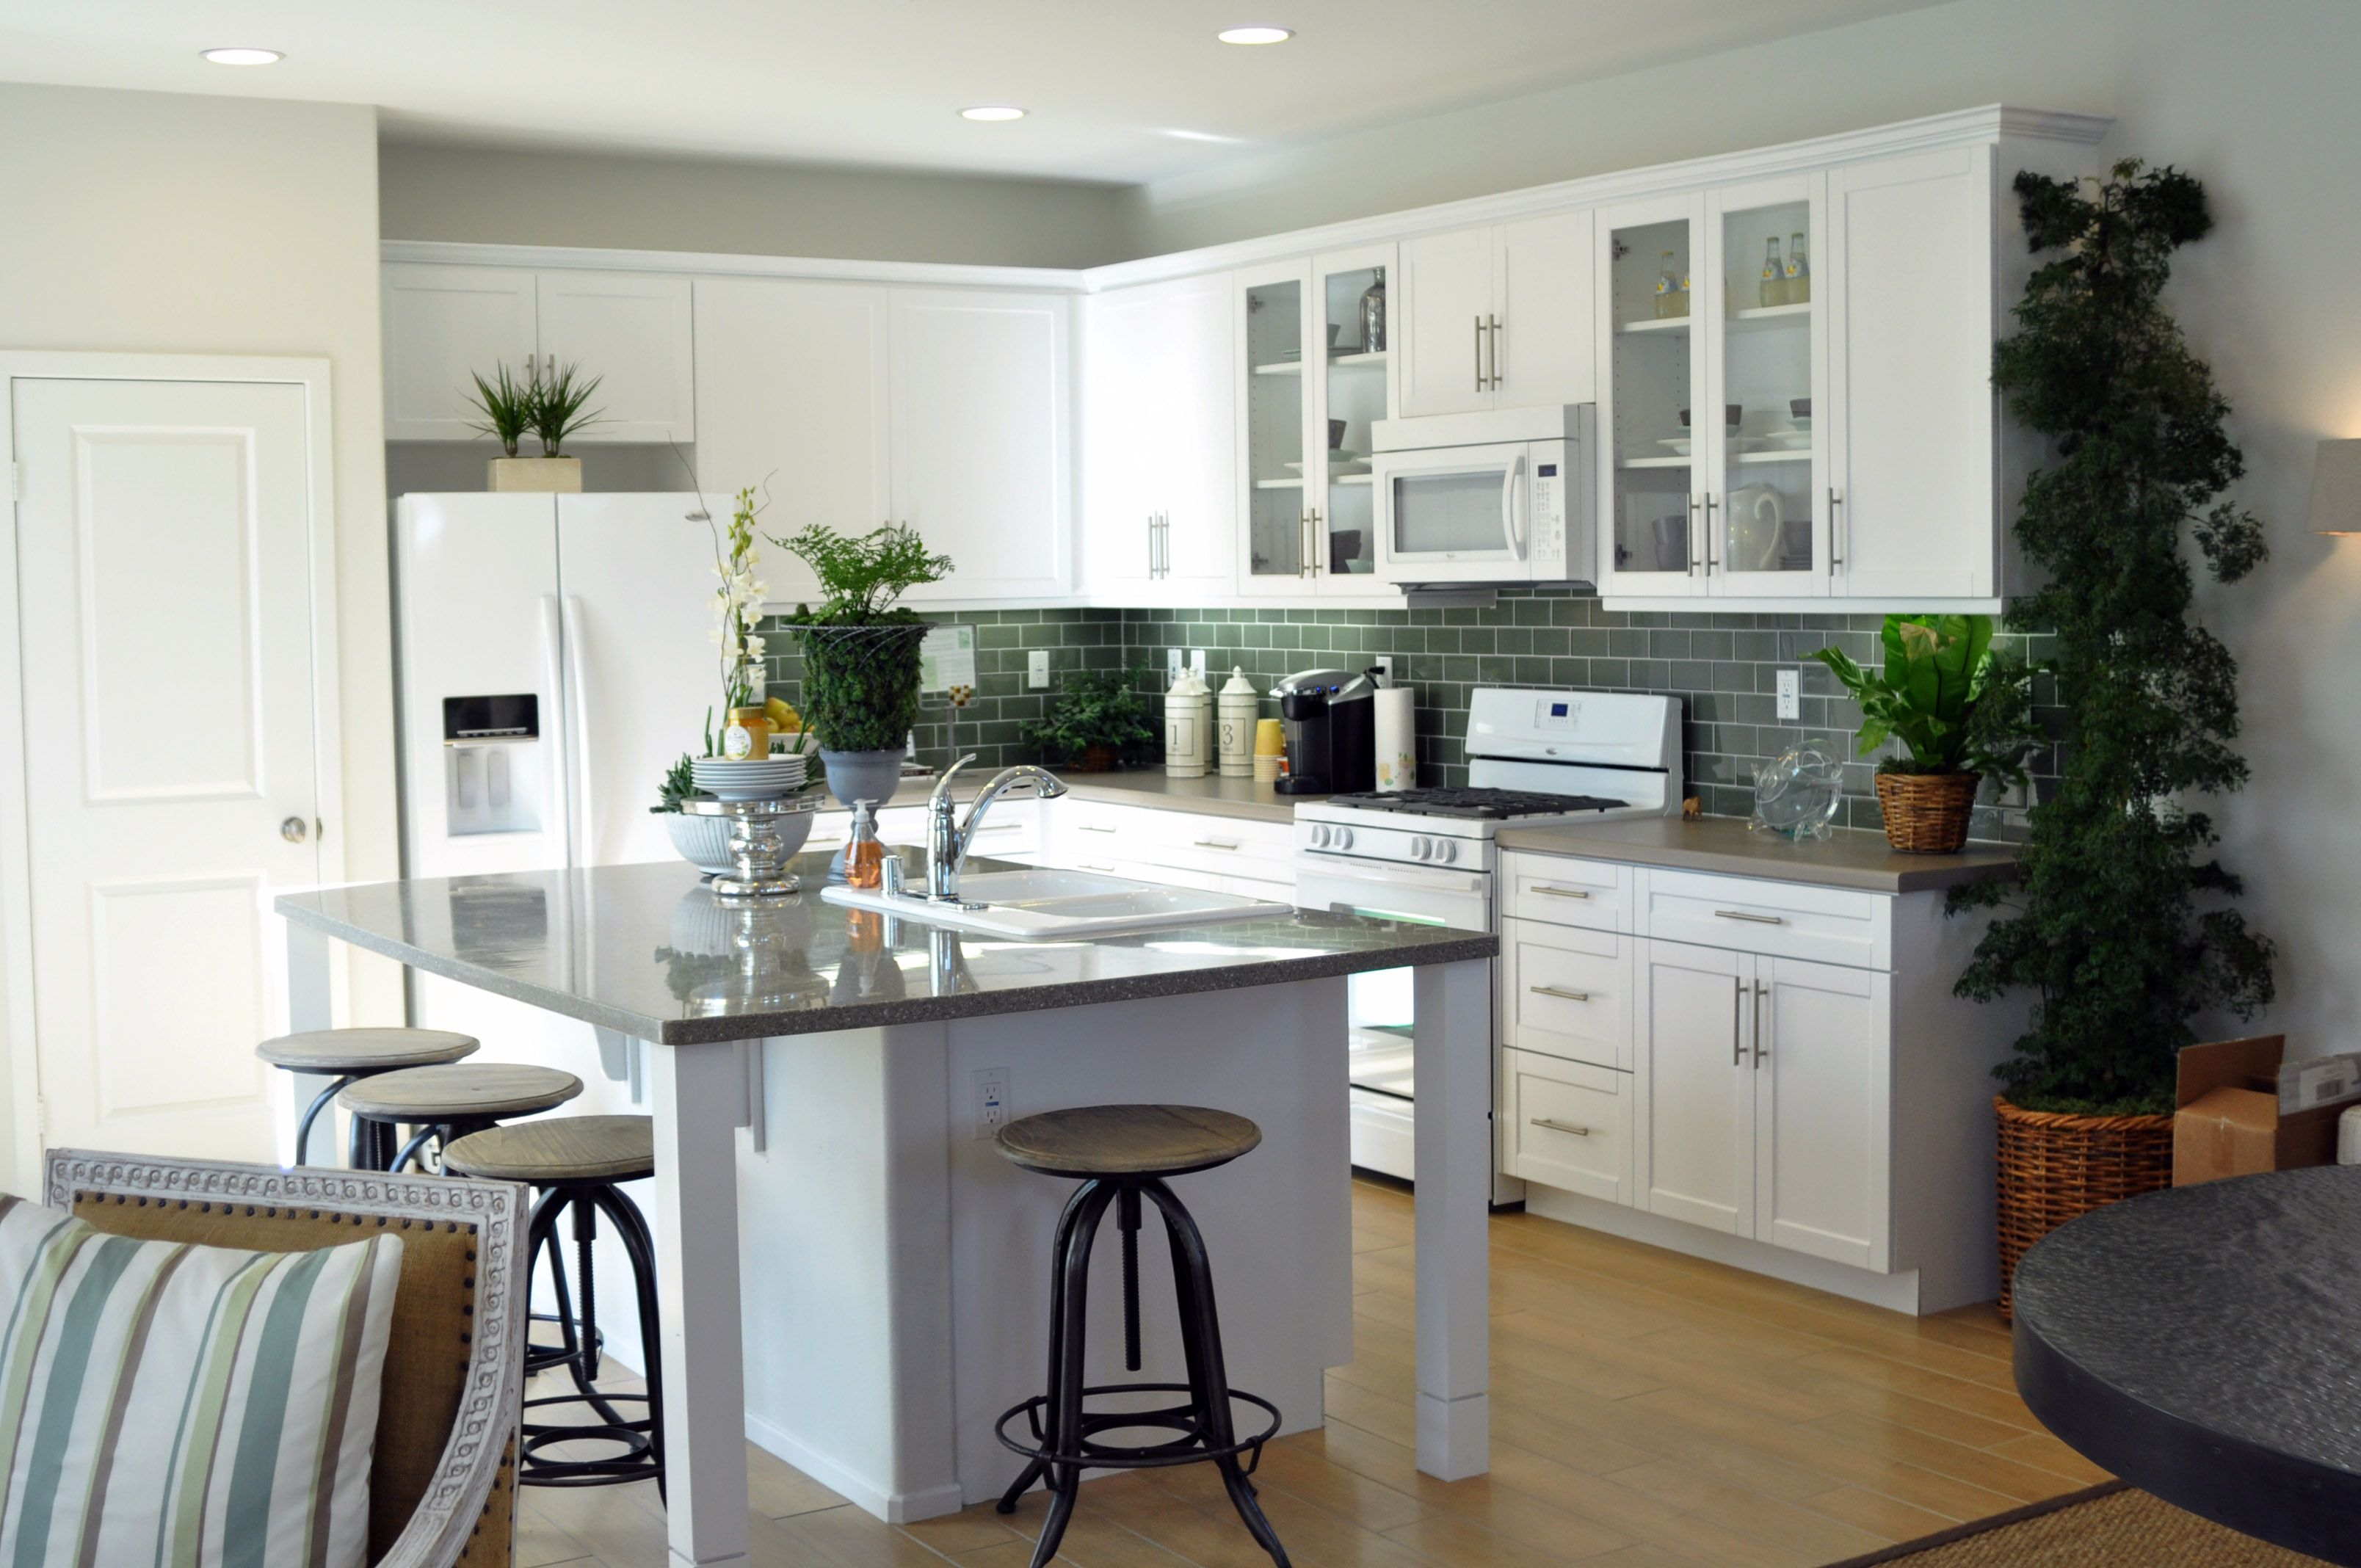 Green Door In Shaker White Rtf Kitchens And Baths By Lynn In California Is A Dealer For Rsi 760 5 Kitchen Plans Modern Kitchen Design Craftsman Kitchen White